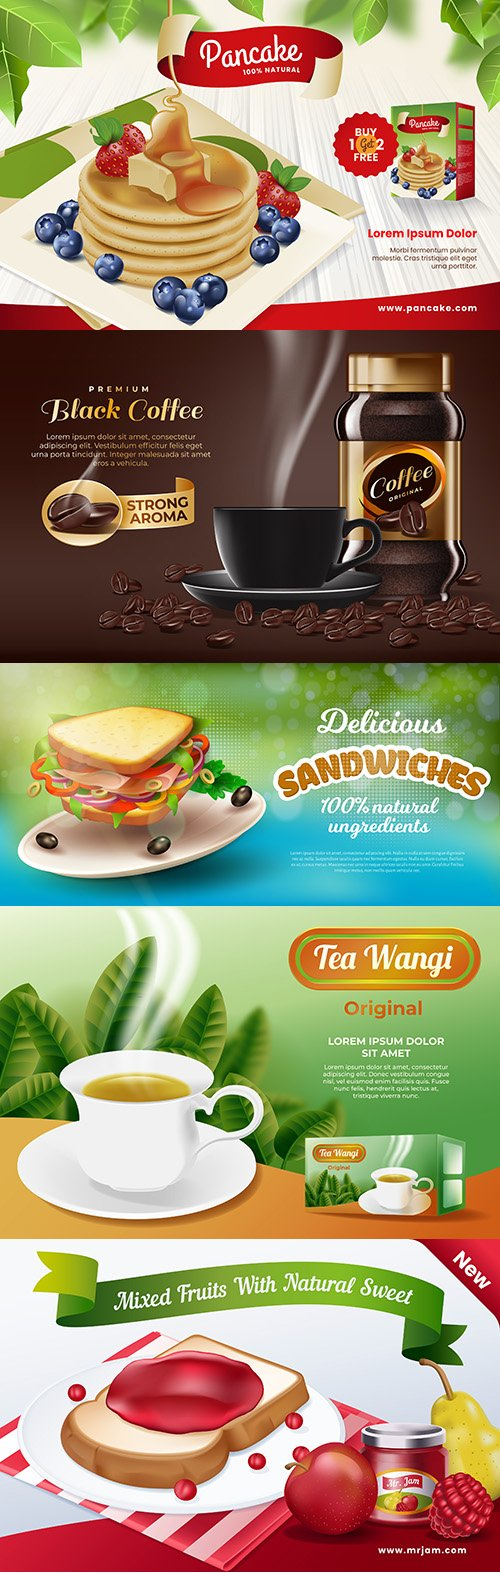 Food advertising drinks and food design